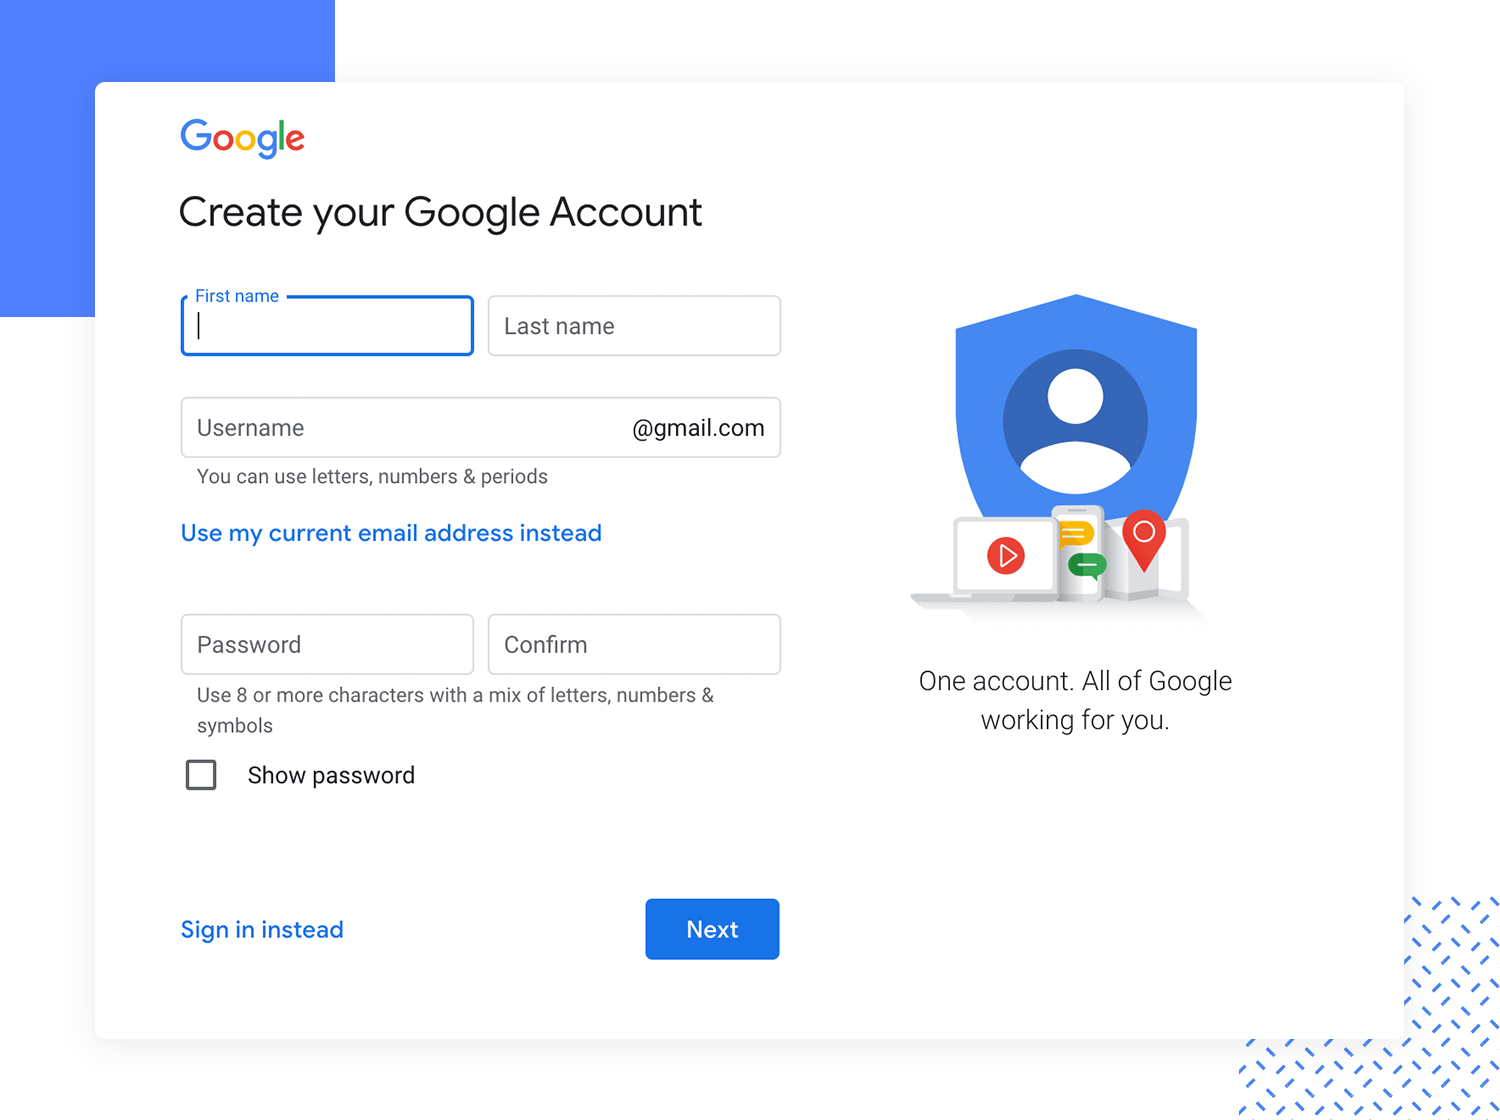 gmail-sign-up-form